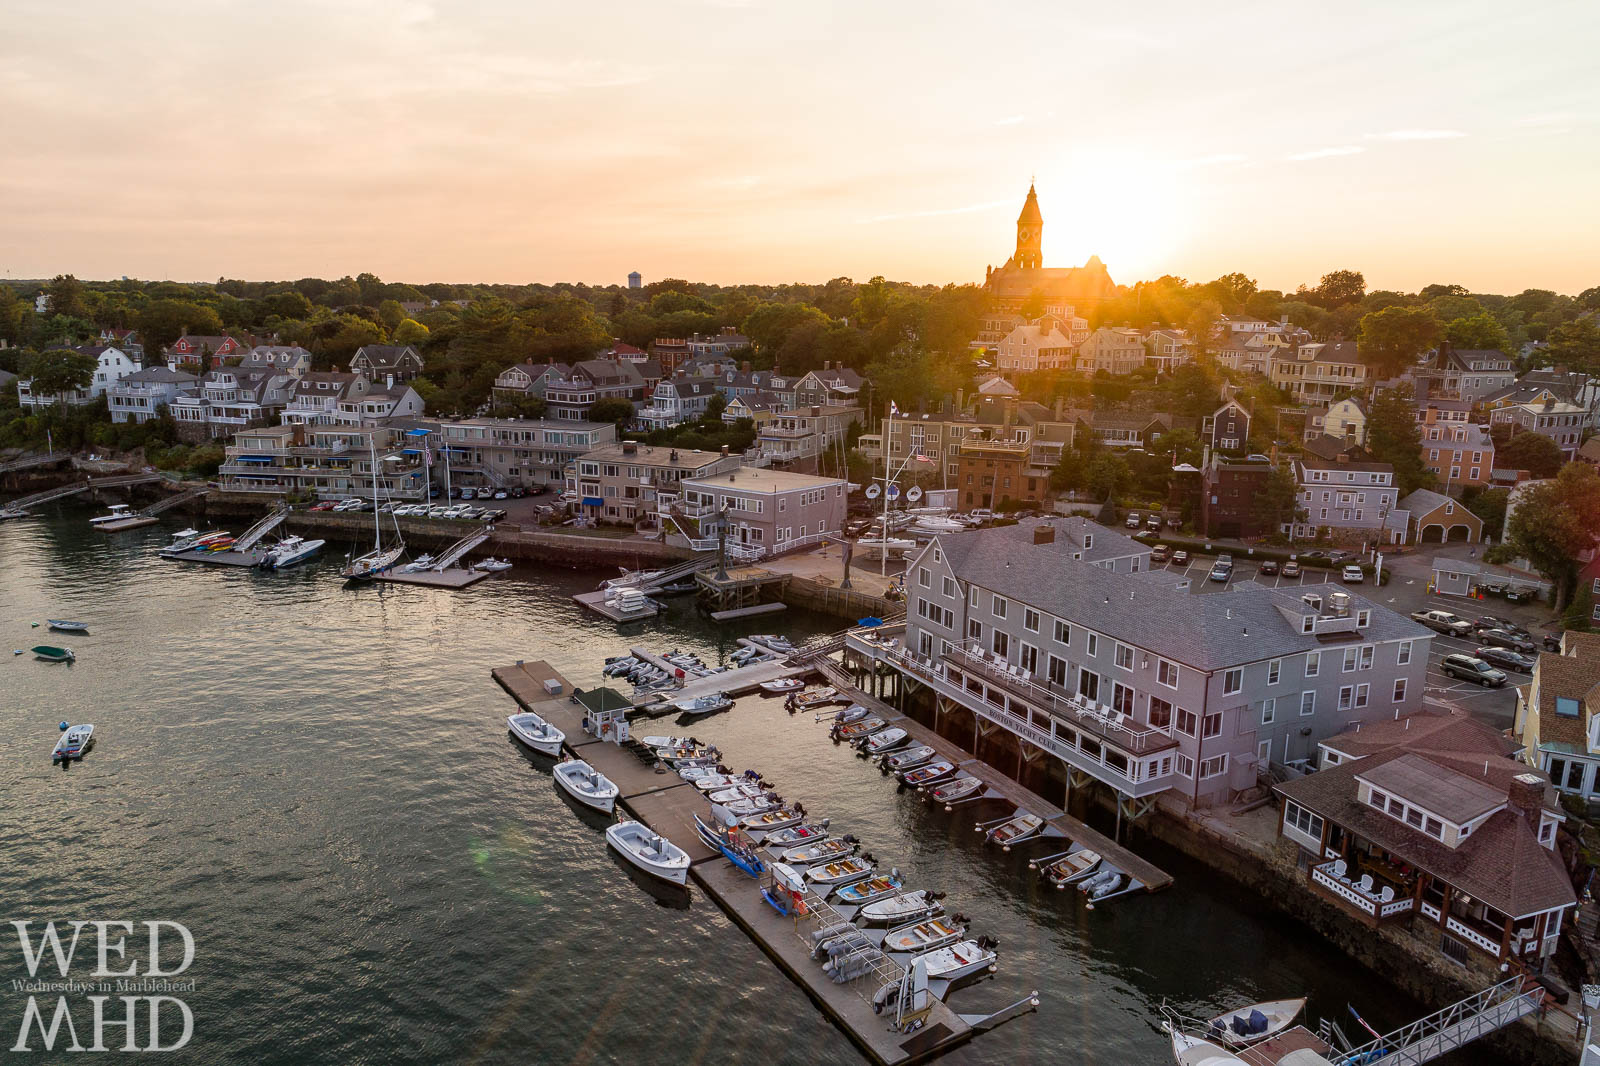 While high above the Boston Yacht Club, the sun sets behind Abbot Hall sending out rays of light over the BYC